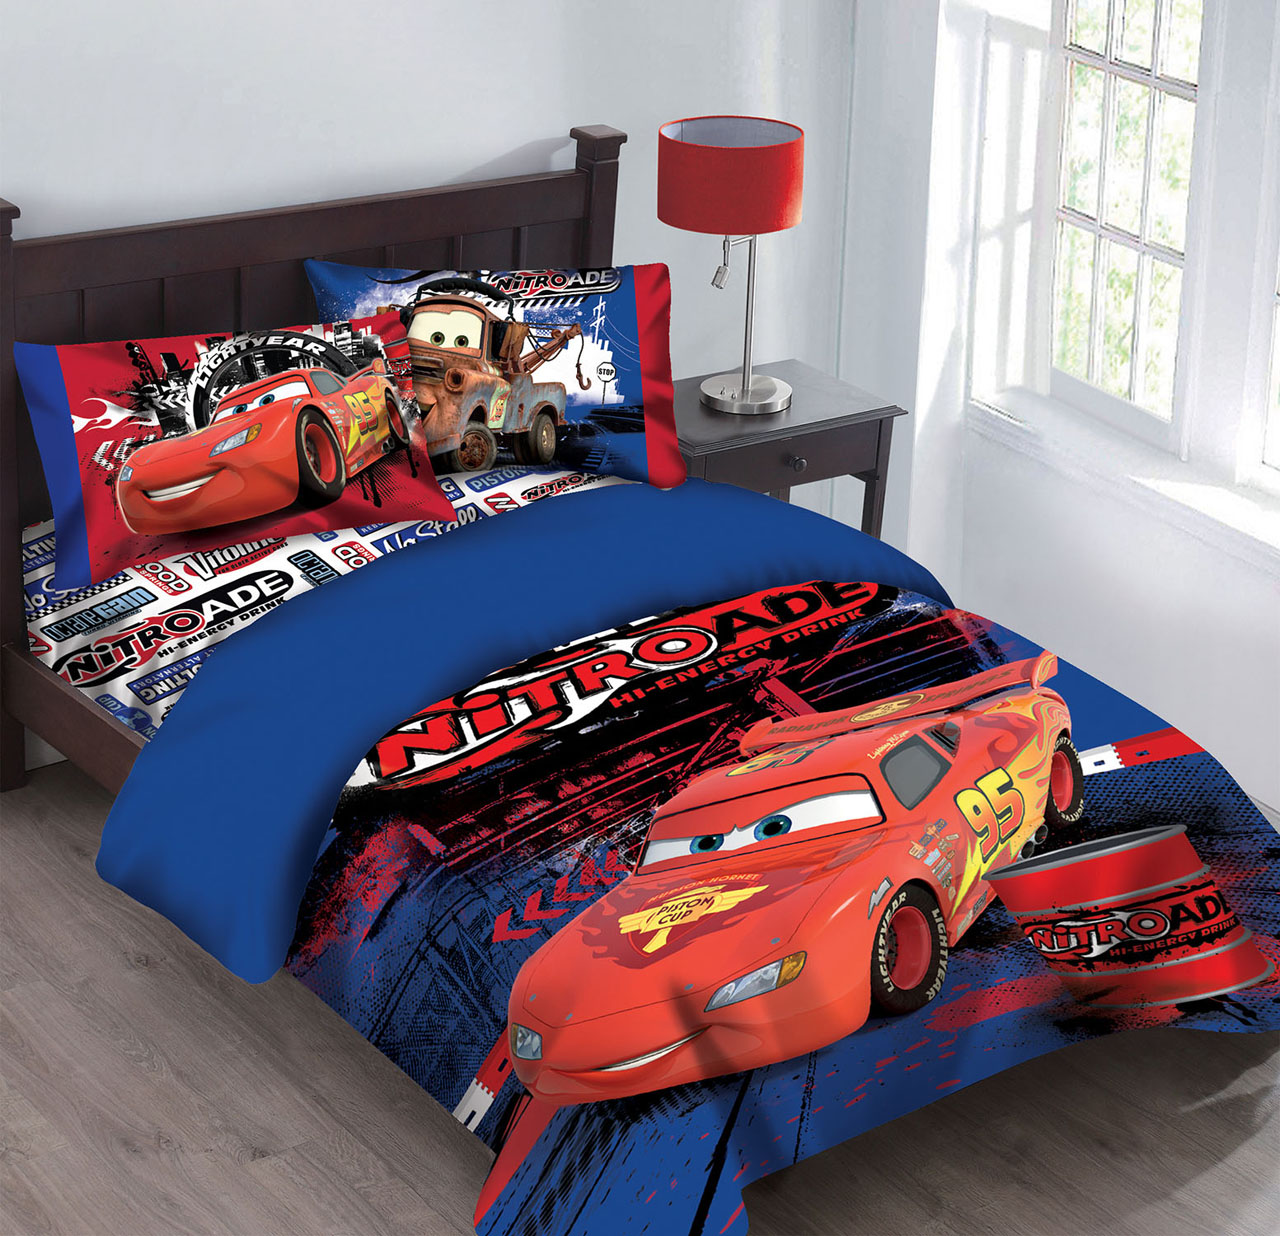 Disney Cars Nitroade Bedding Comforter Set